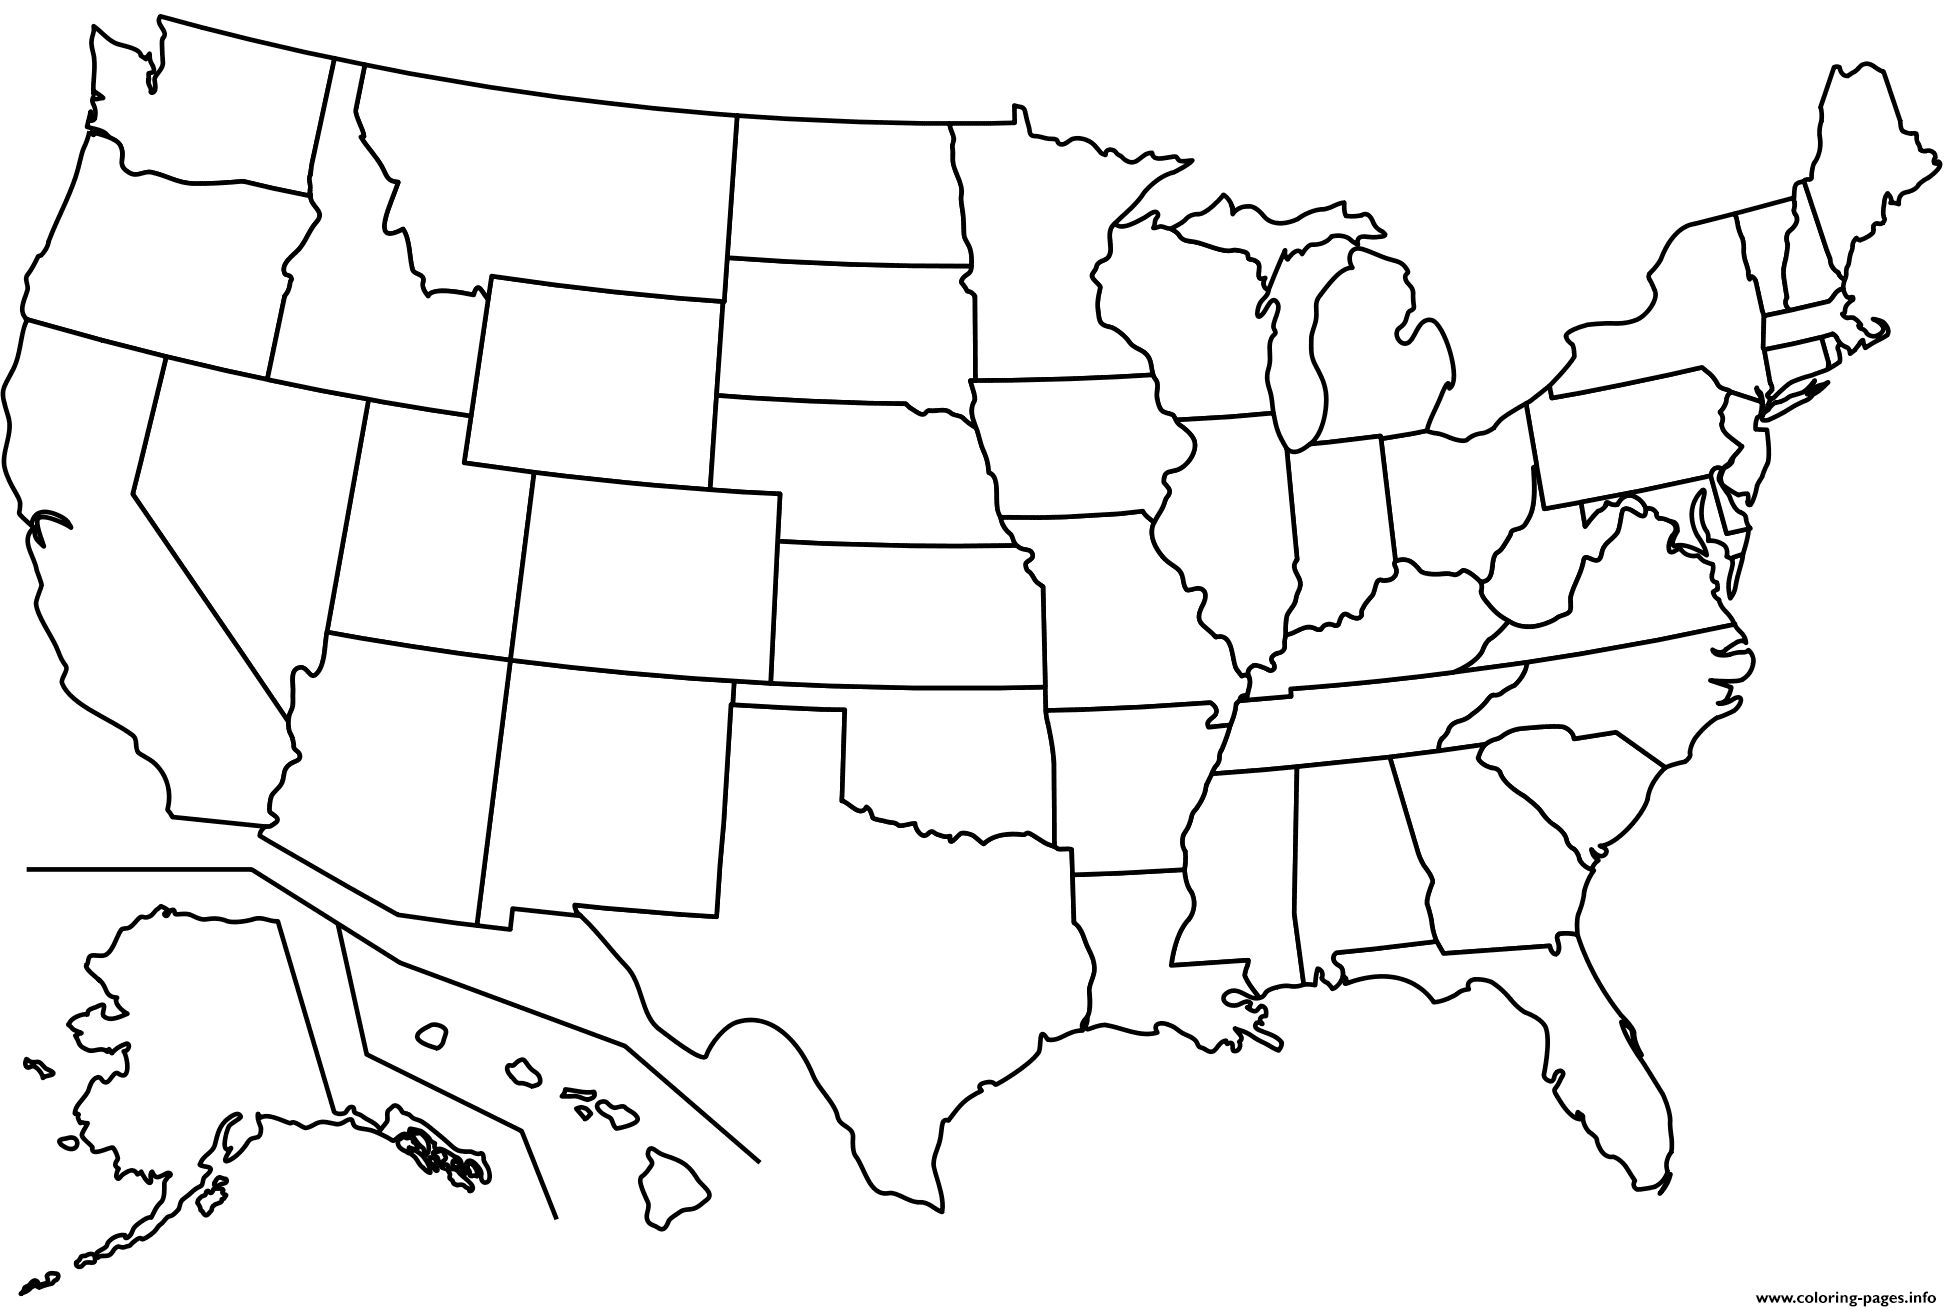 printable us map coloring page blank us map dr odd geography map outline state printable page us coloring map